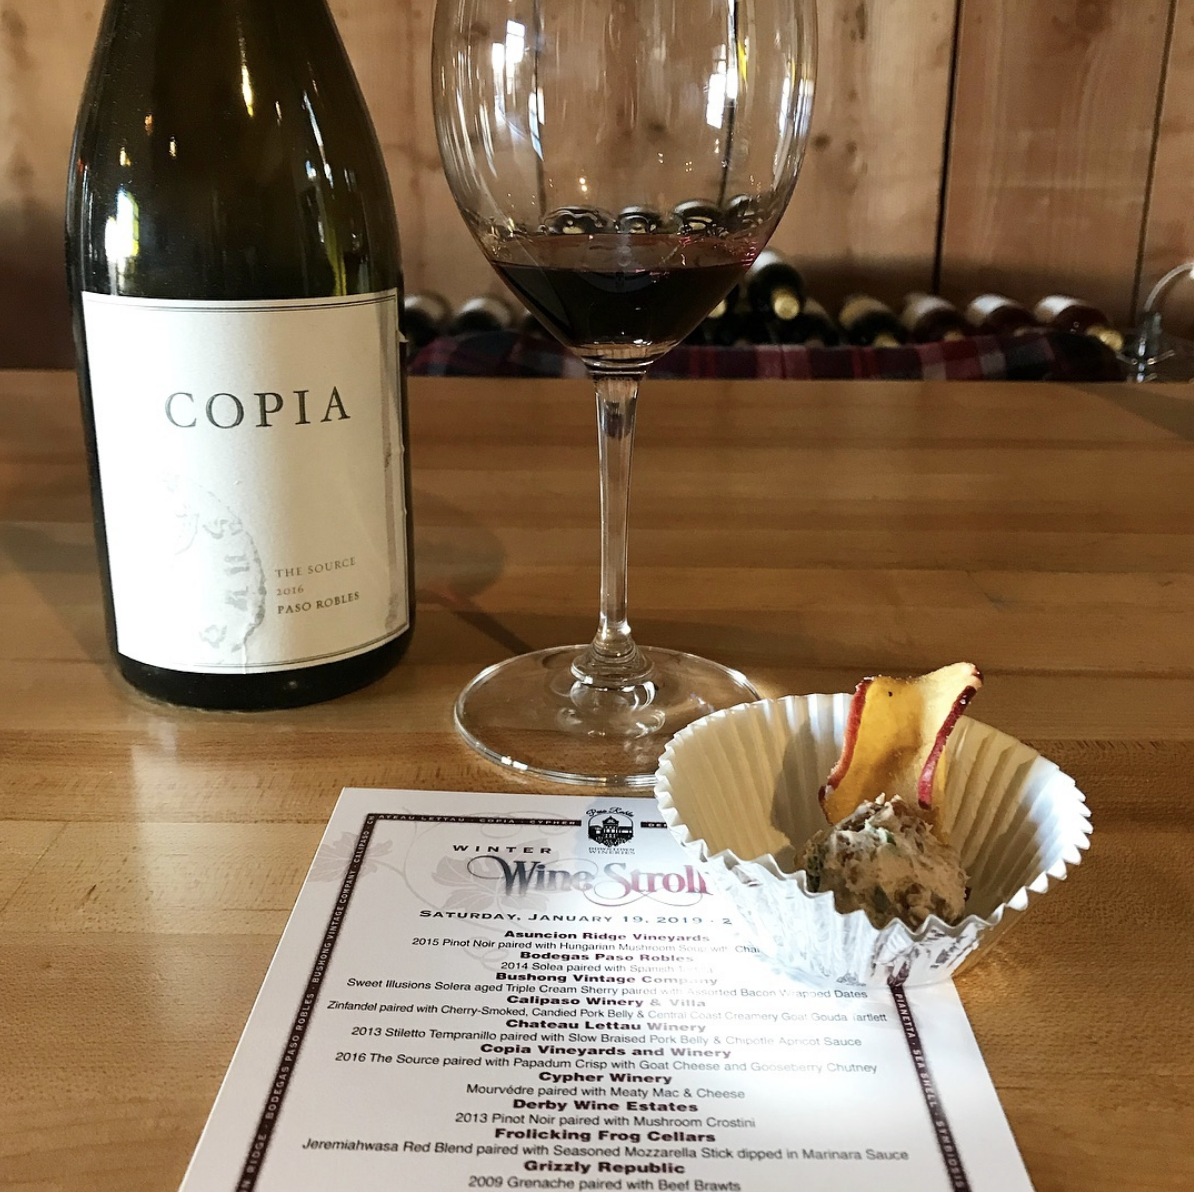 Copia Vineyards